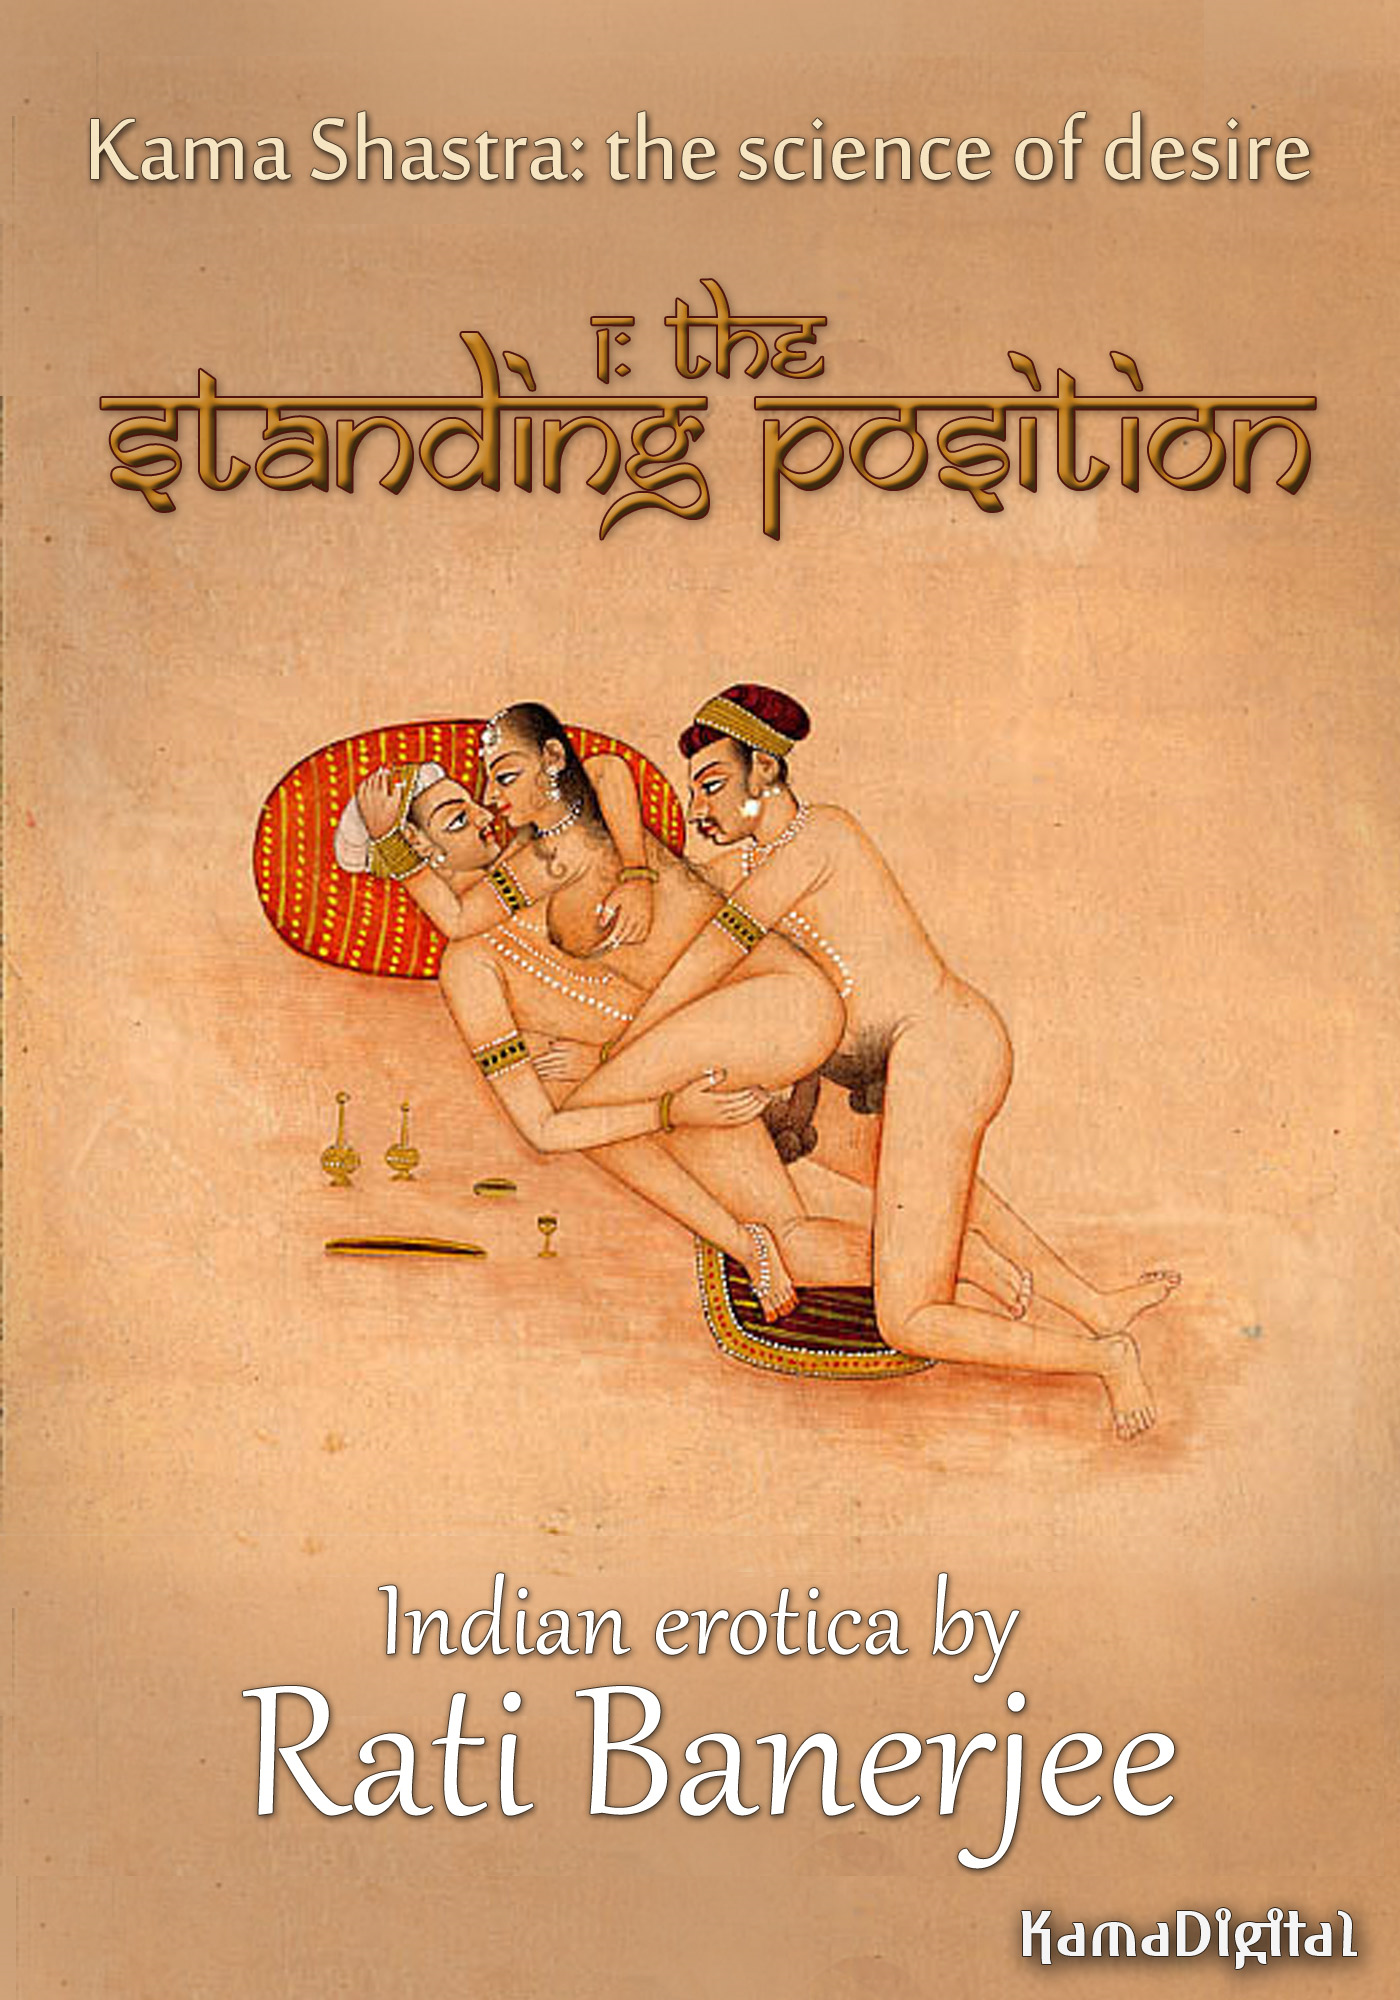 Kama Shastra 1: The Standing Position (Indian erotica, including adultery, open marriage, threesomes and group sex) By: Rati Banerjee